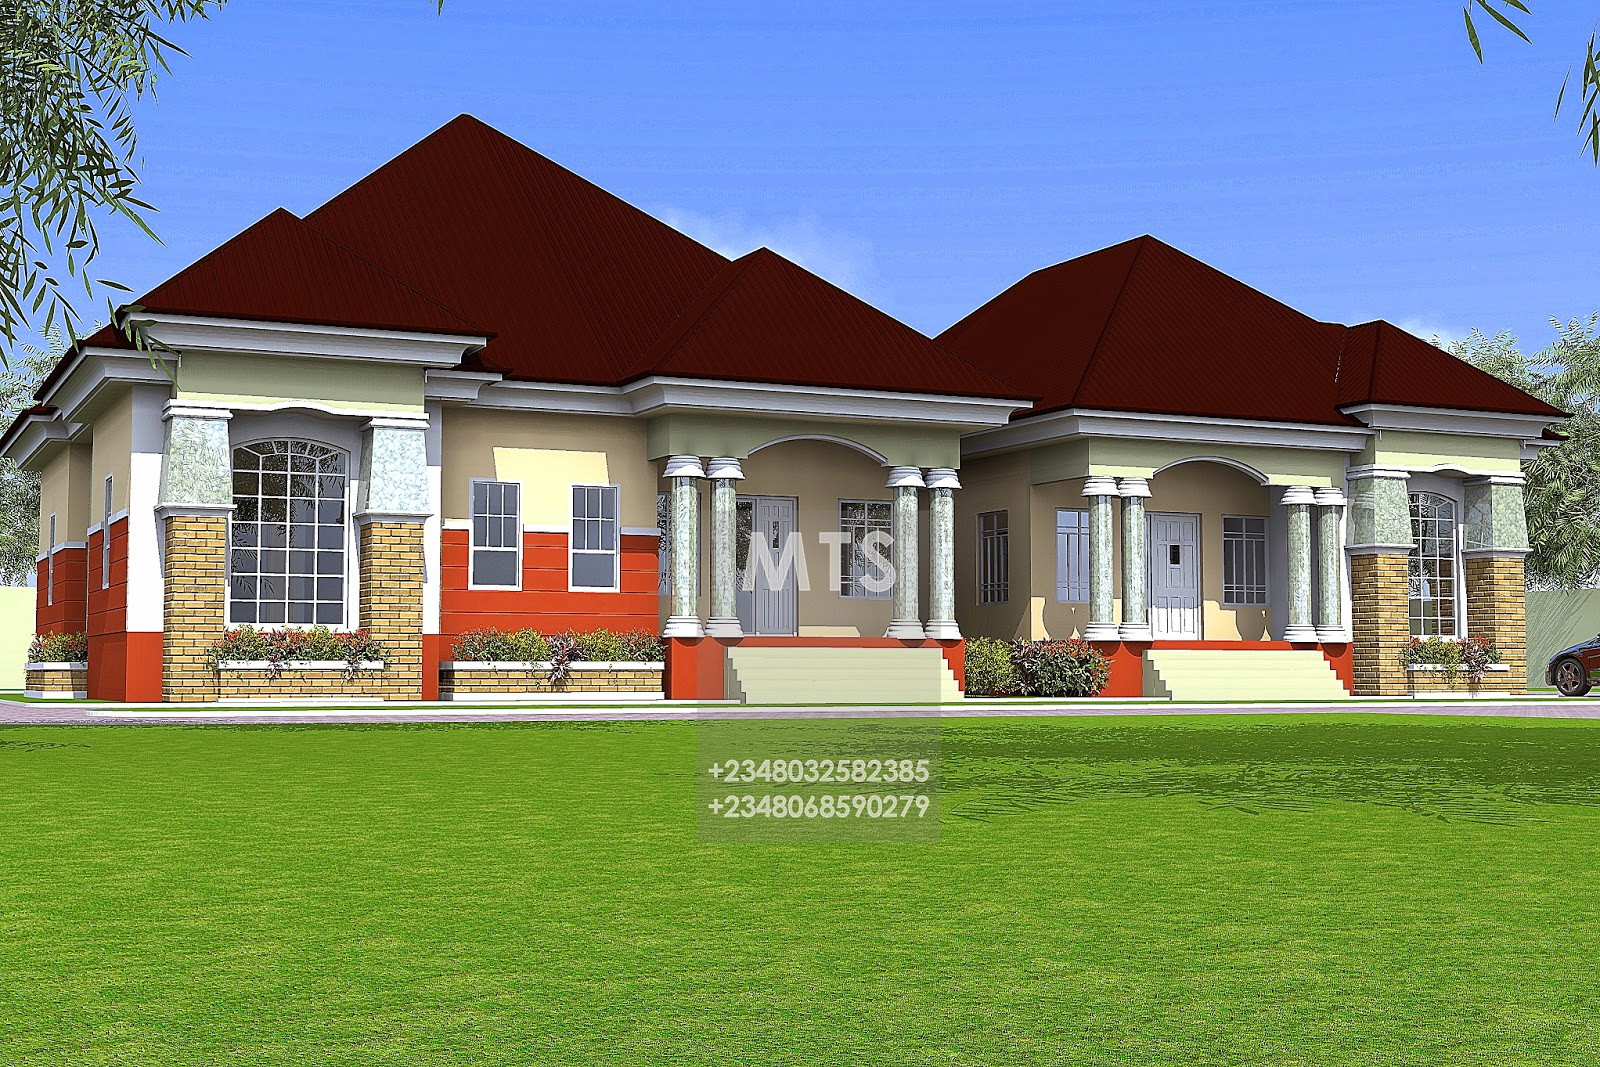 Residential homes and public designs for 2 bedroom bungalow